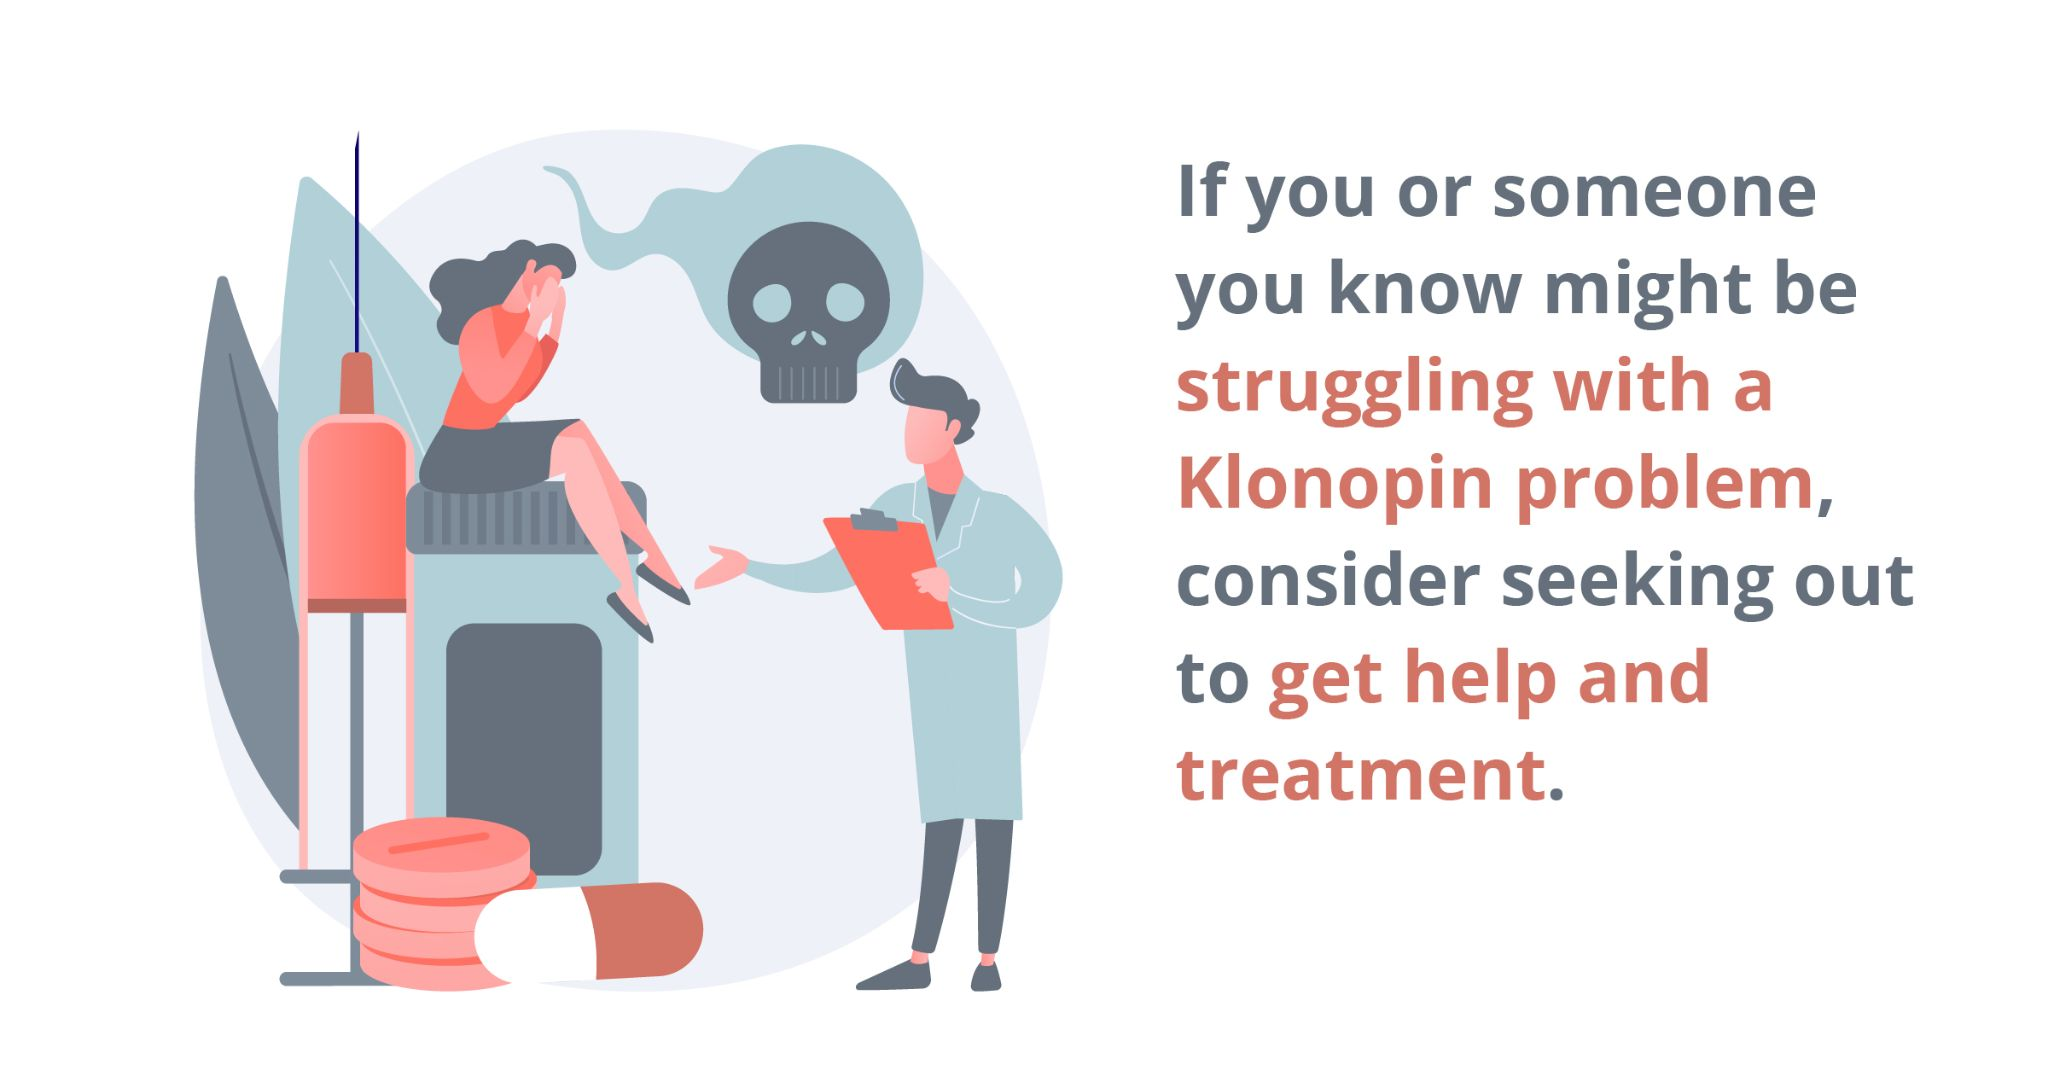 If you or someone you know might be struggling with a Klonopin problem, consider seeking out to get help and treatment.